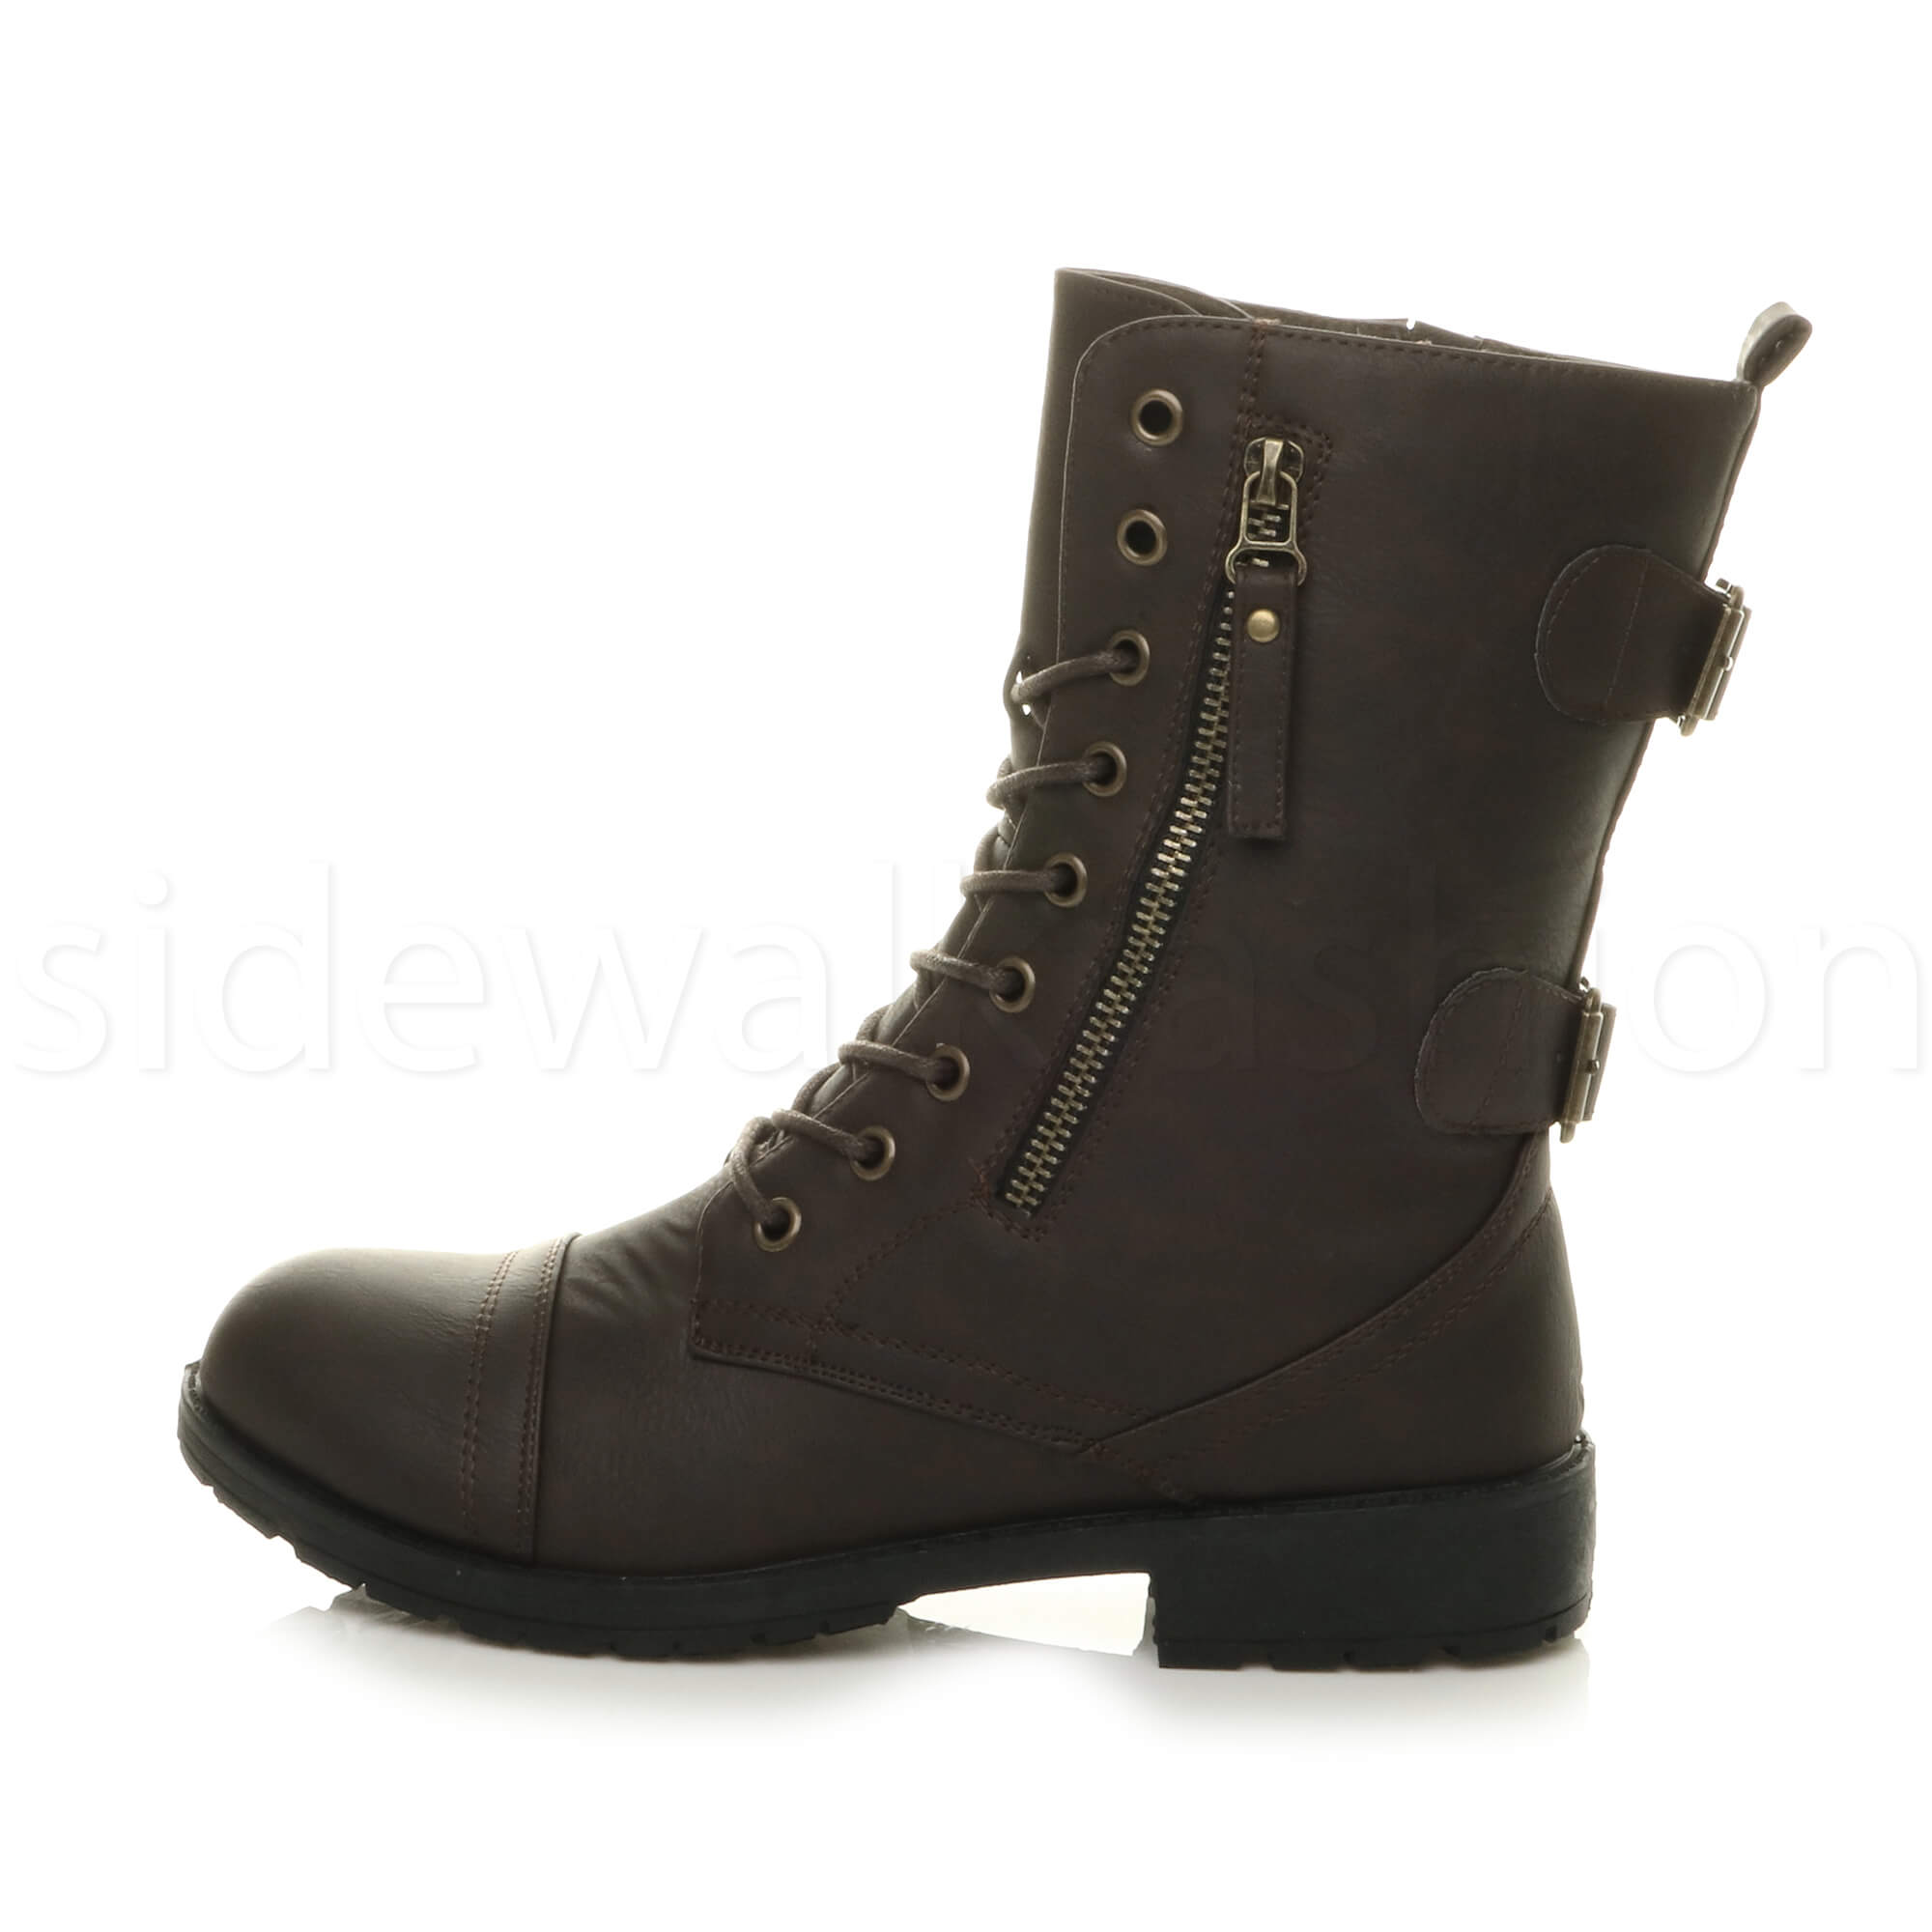 Womens-ladies-low-heel-flat-lace-up-zip-combat-biker-military-ankle-boots-size thumbnail 35